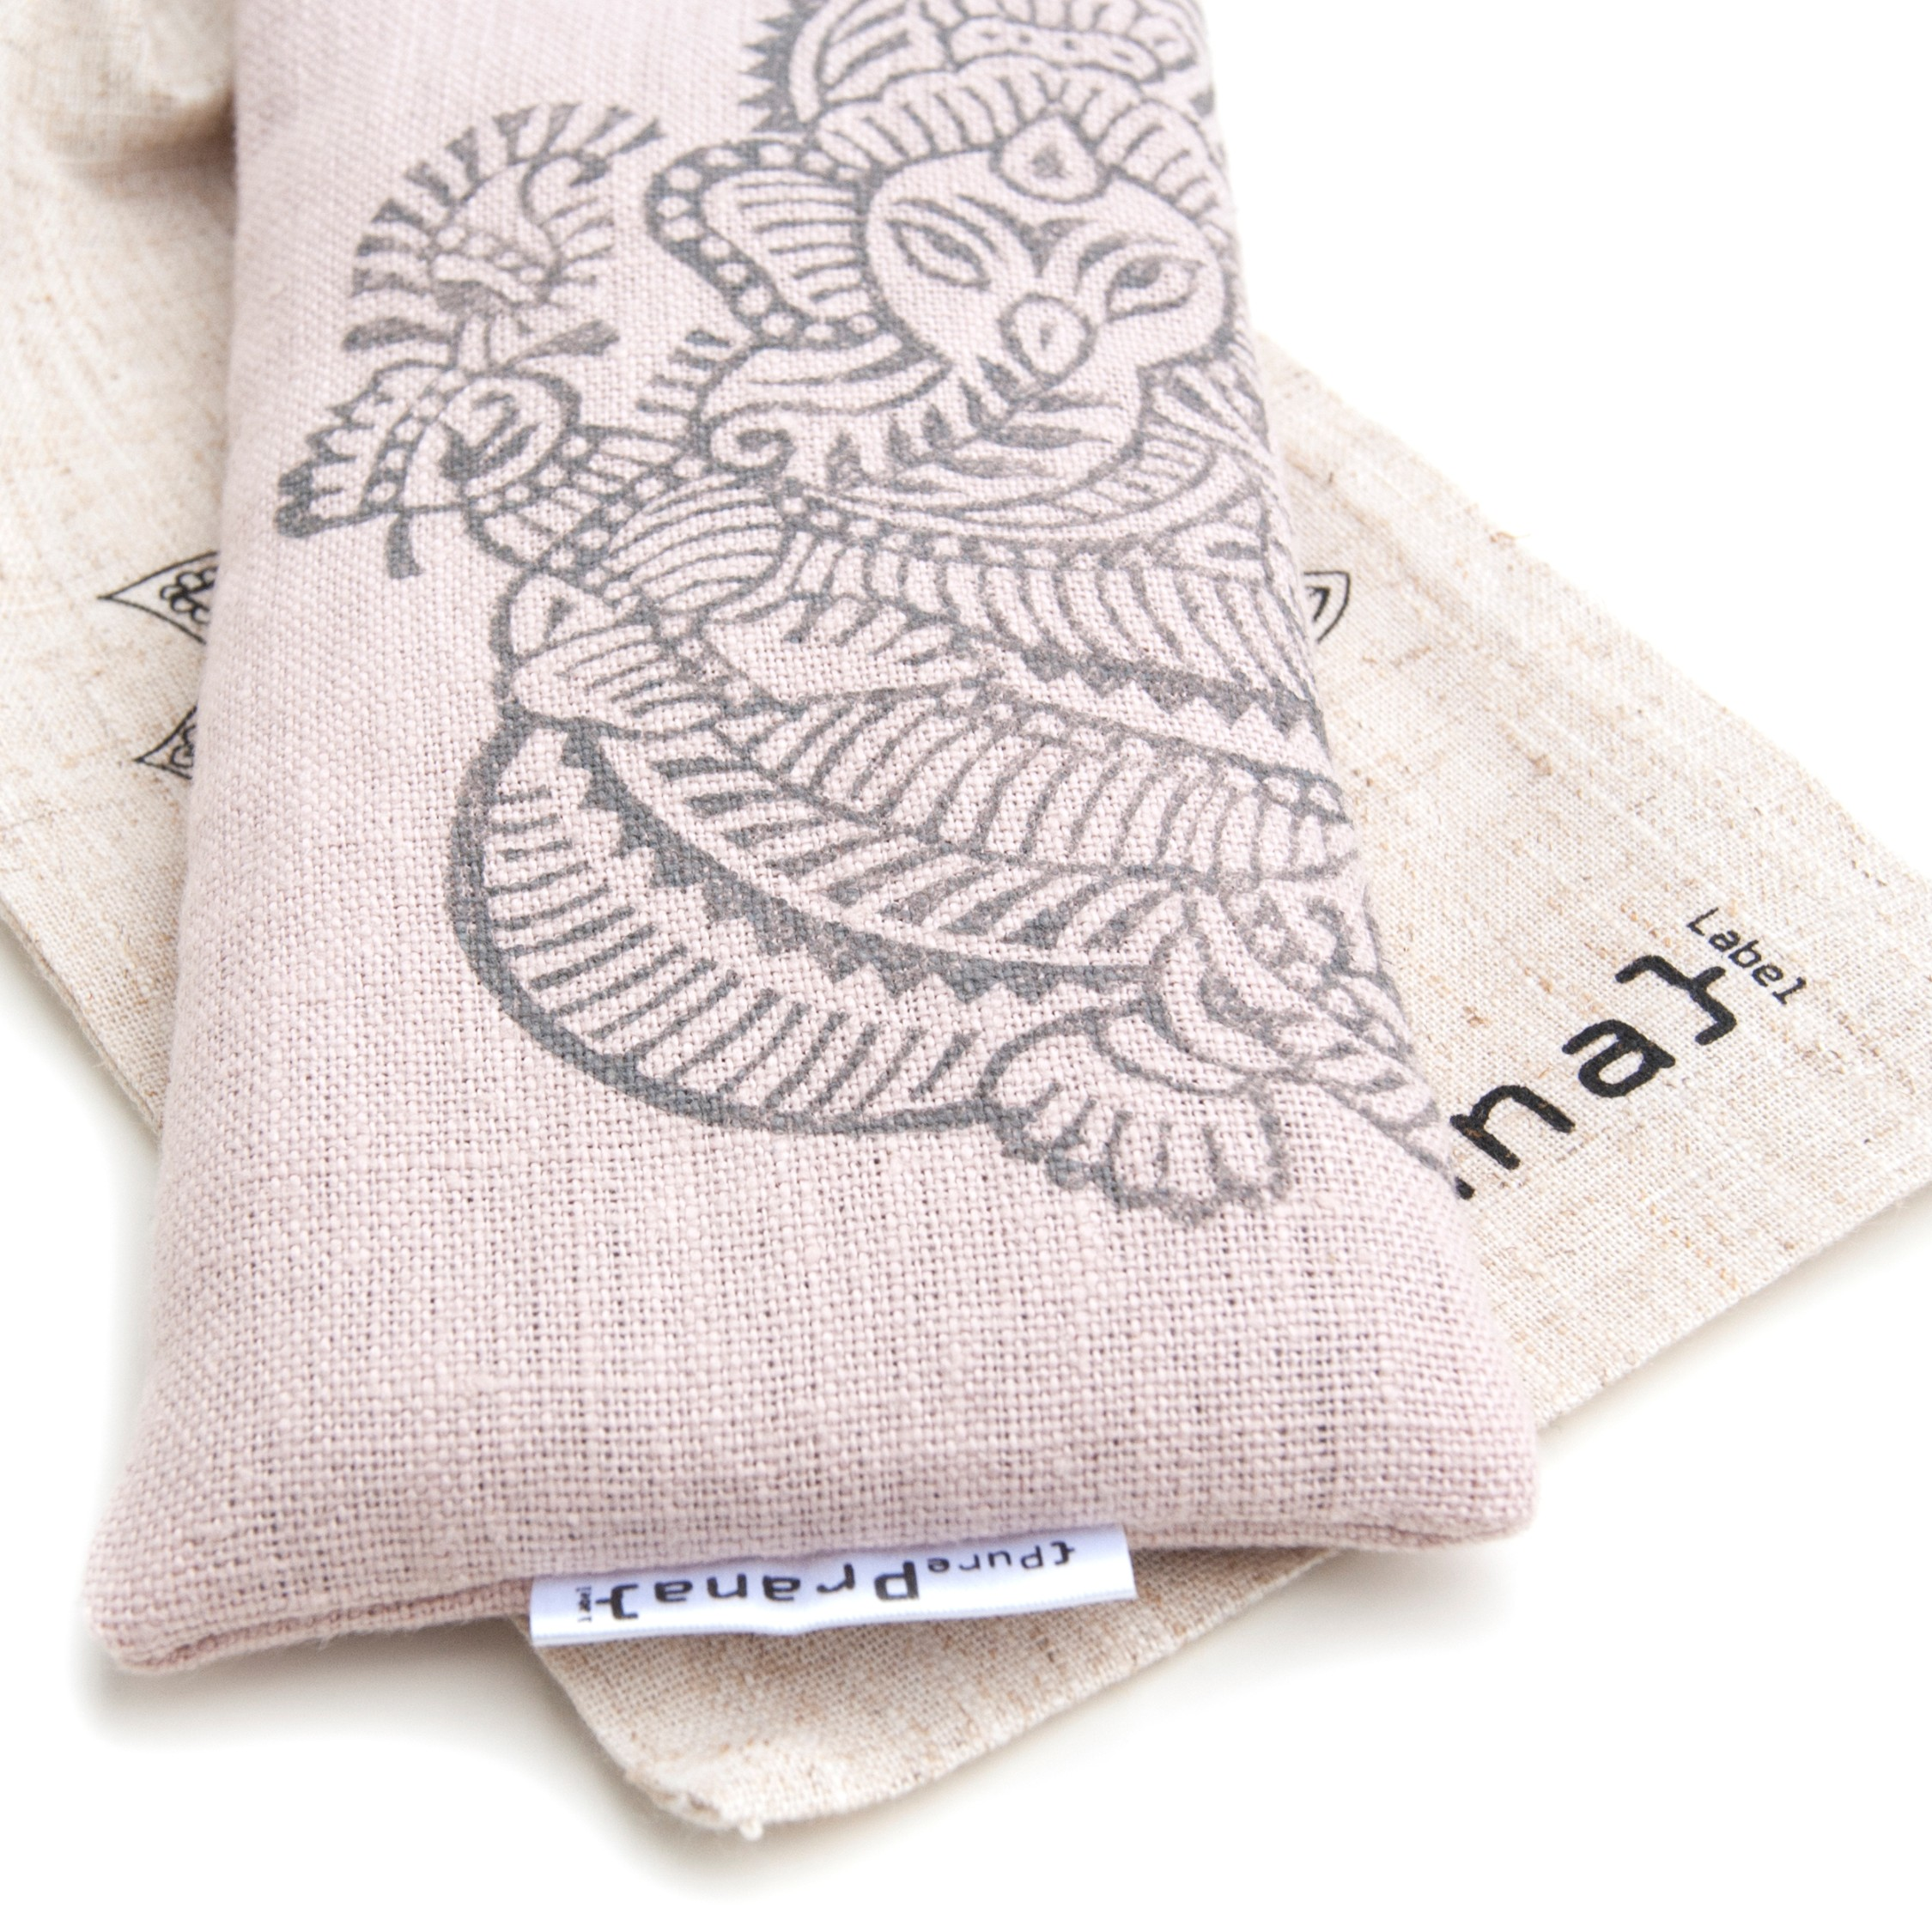 Yoga eye pillow Ganesh in pink